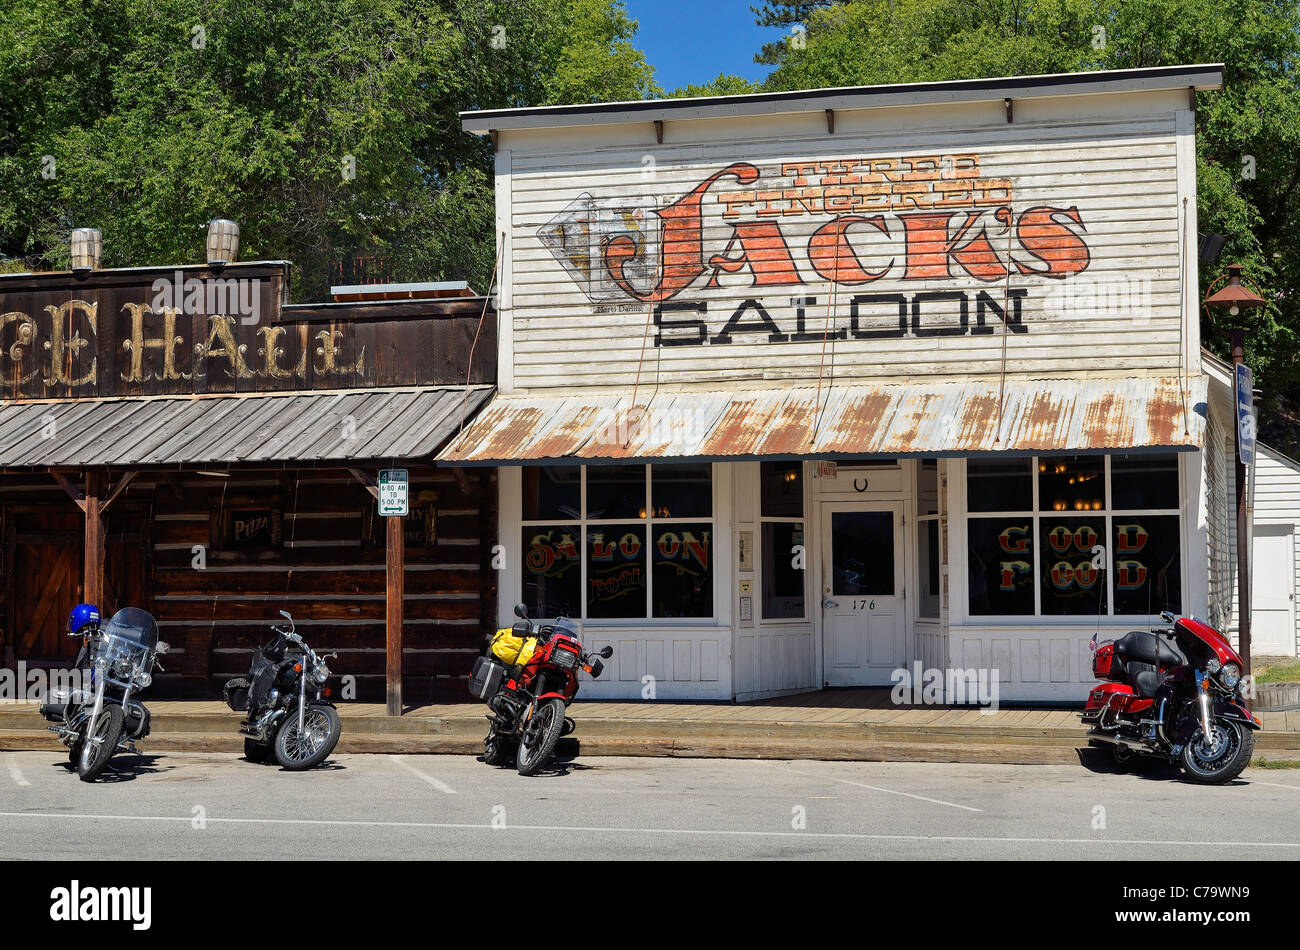 Motorcycles outside Three Fingered Jack's Saloon, Winthrop, Washington, USA - Stock Image